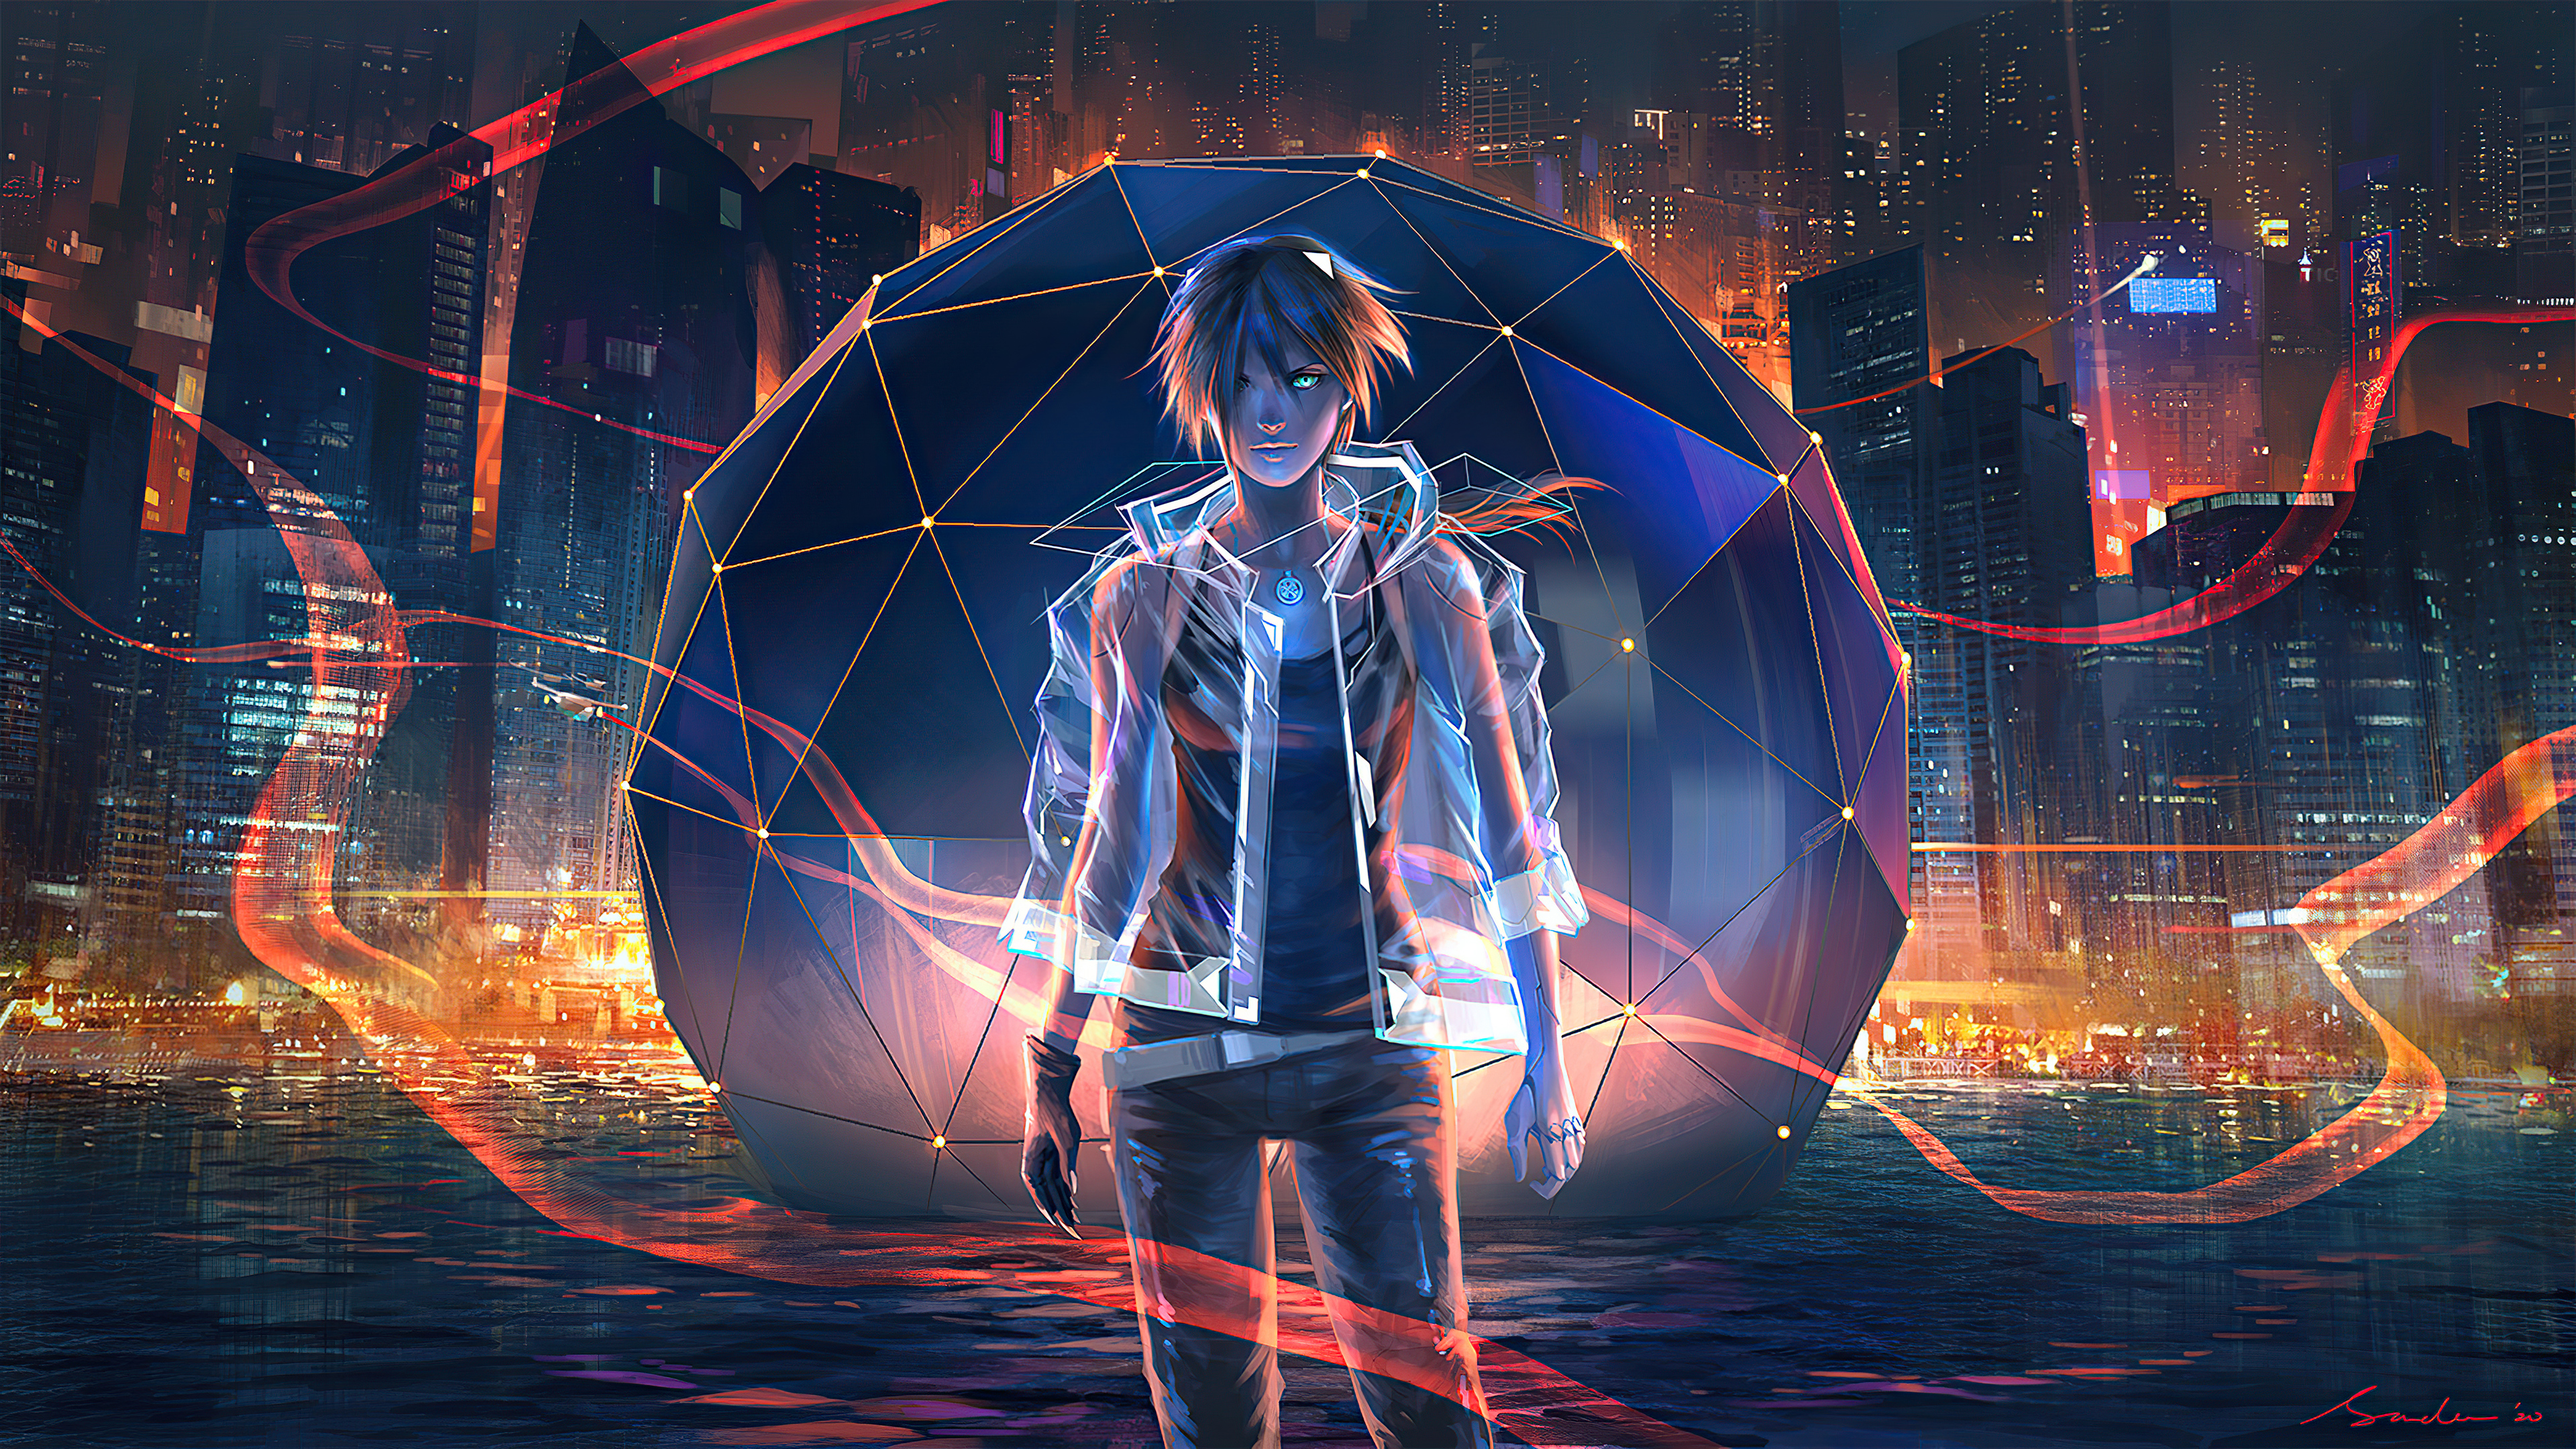 Night City Anime Boy 4k Hd Anime 4k Wallpapers Images Backgrounds Photos And Pictures